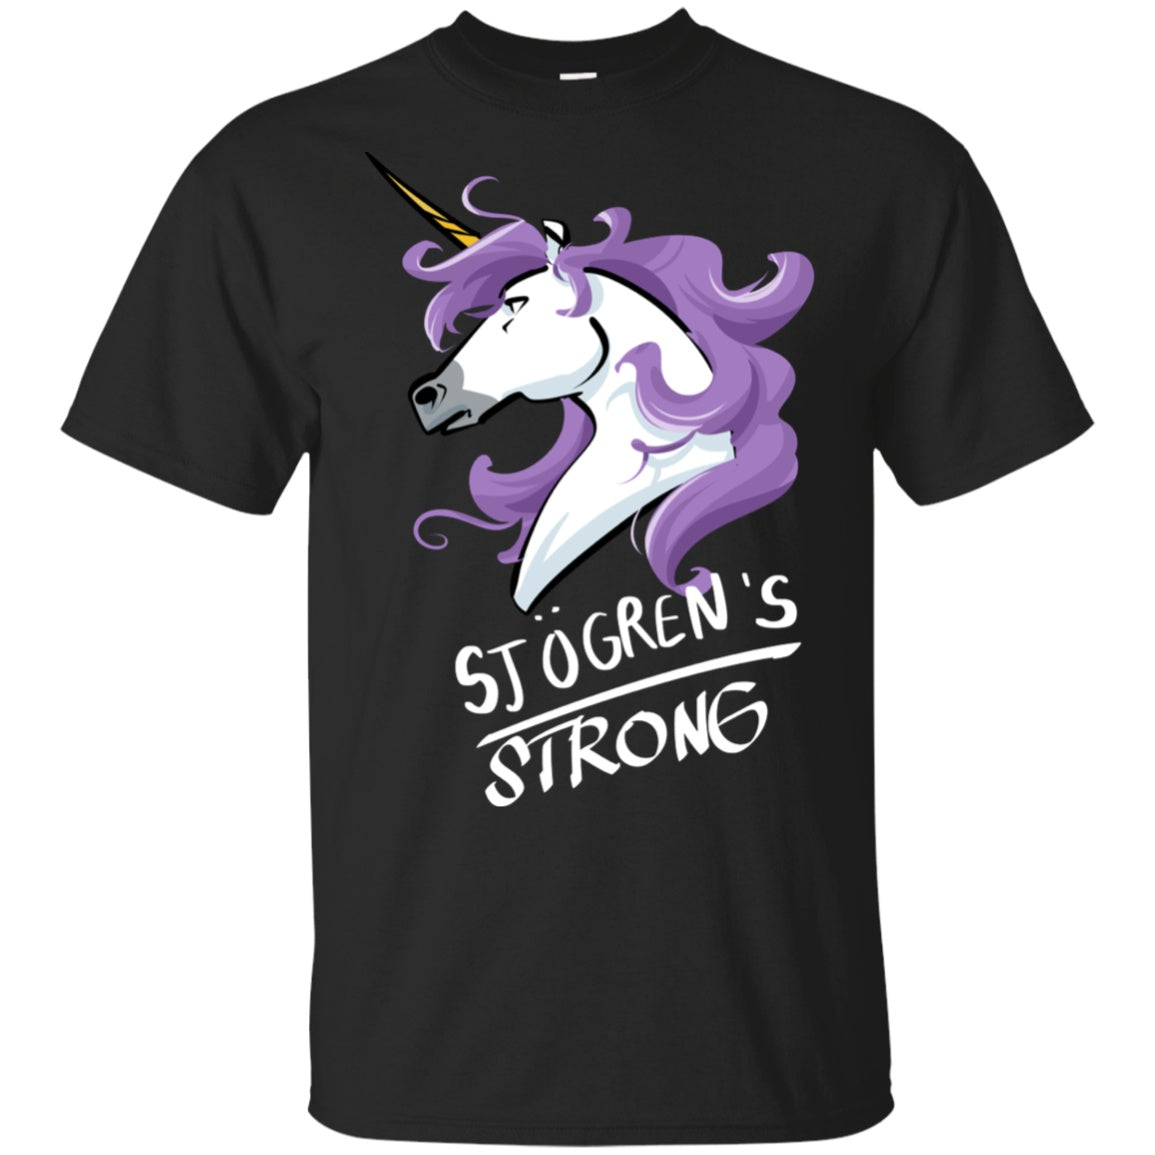 Sjogrens Strong Unicorn Cotton Unisex T-Shirt - The Unchargeables